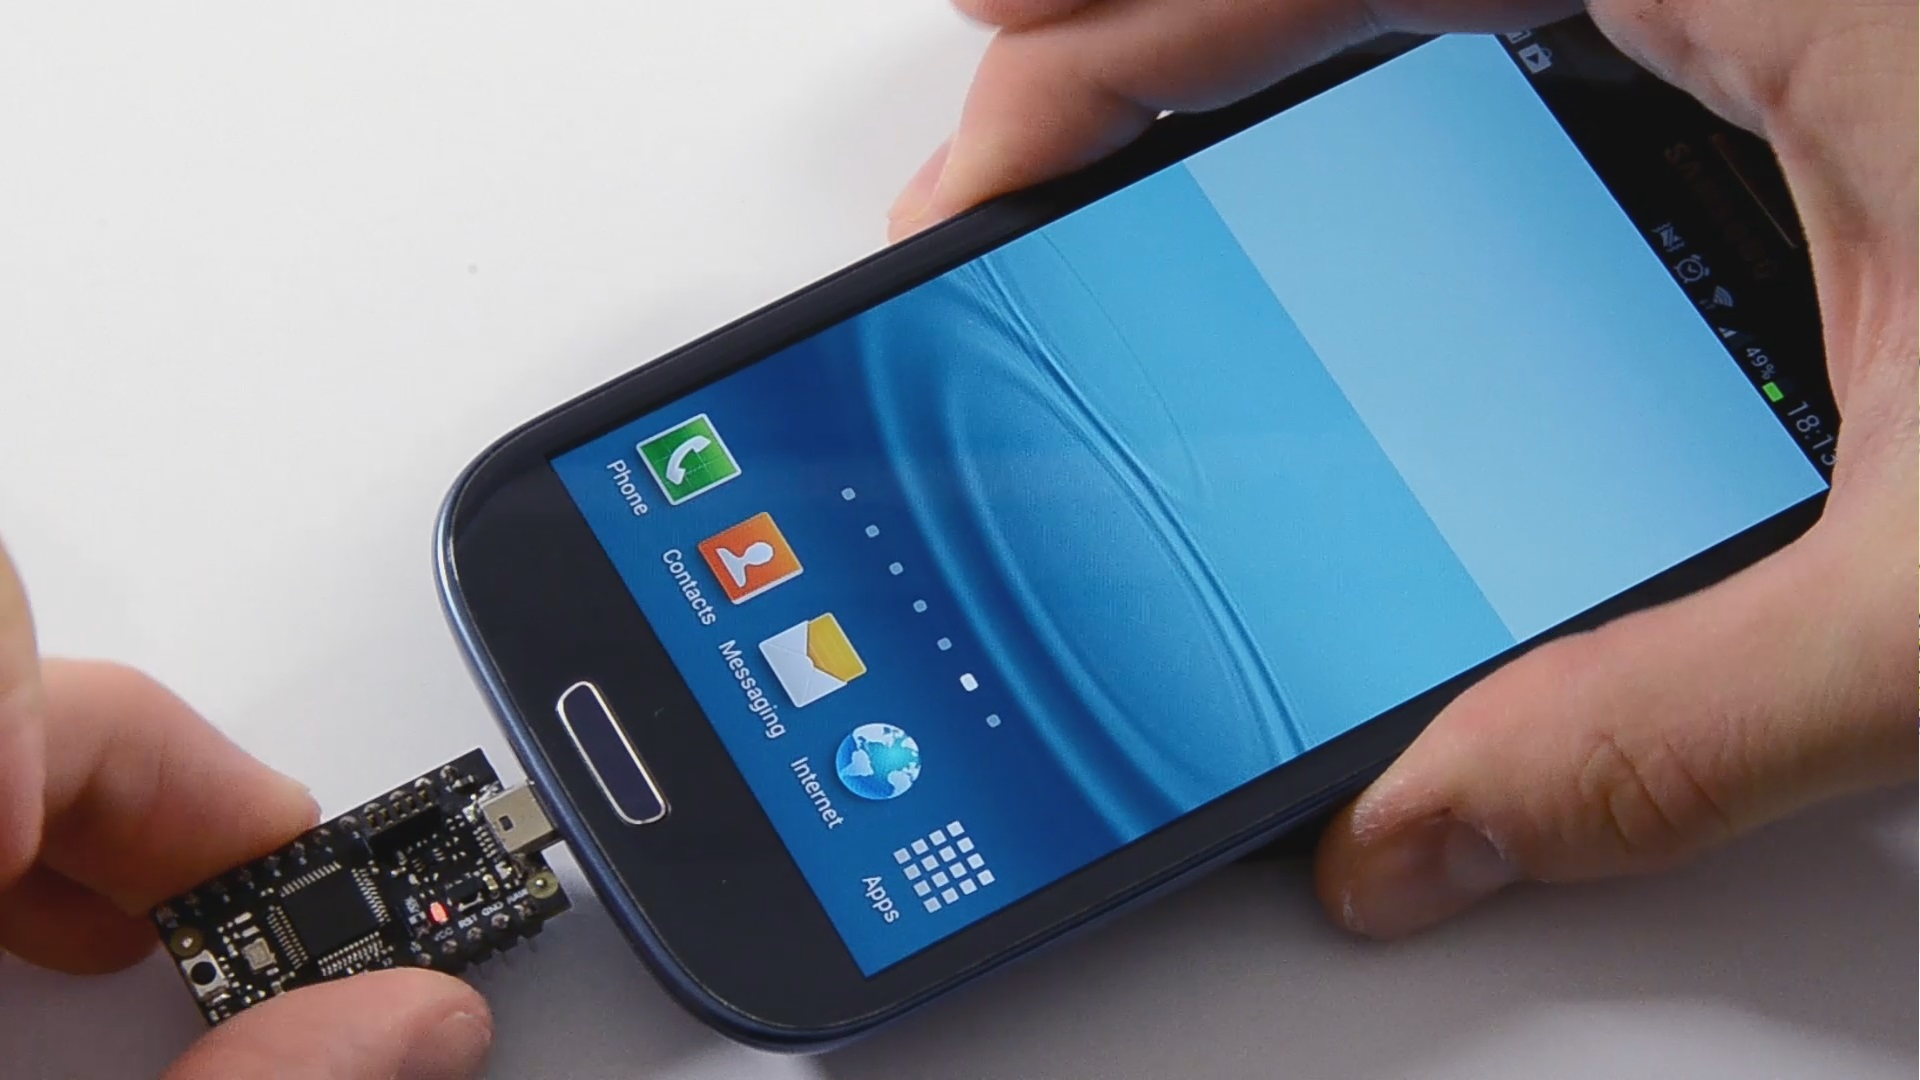 USB2Go Is A Smartphone-Powered Micro USB Dev Board For Building Android Connected Gadgets